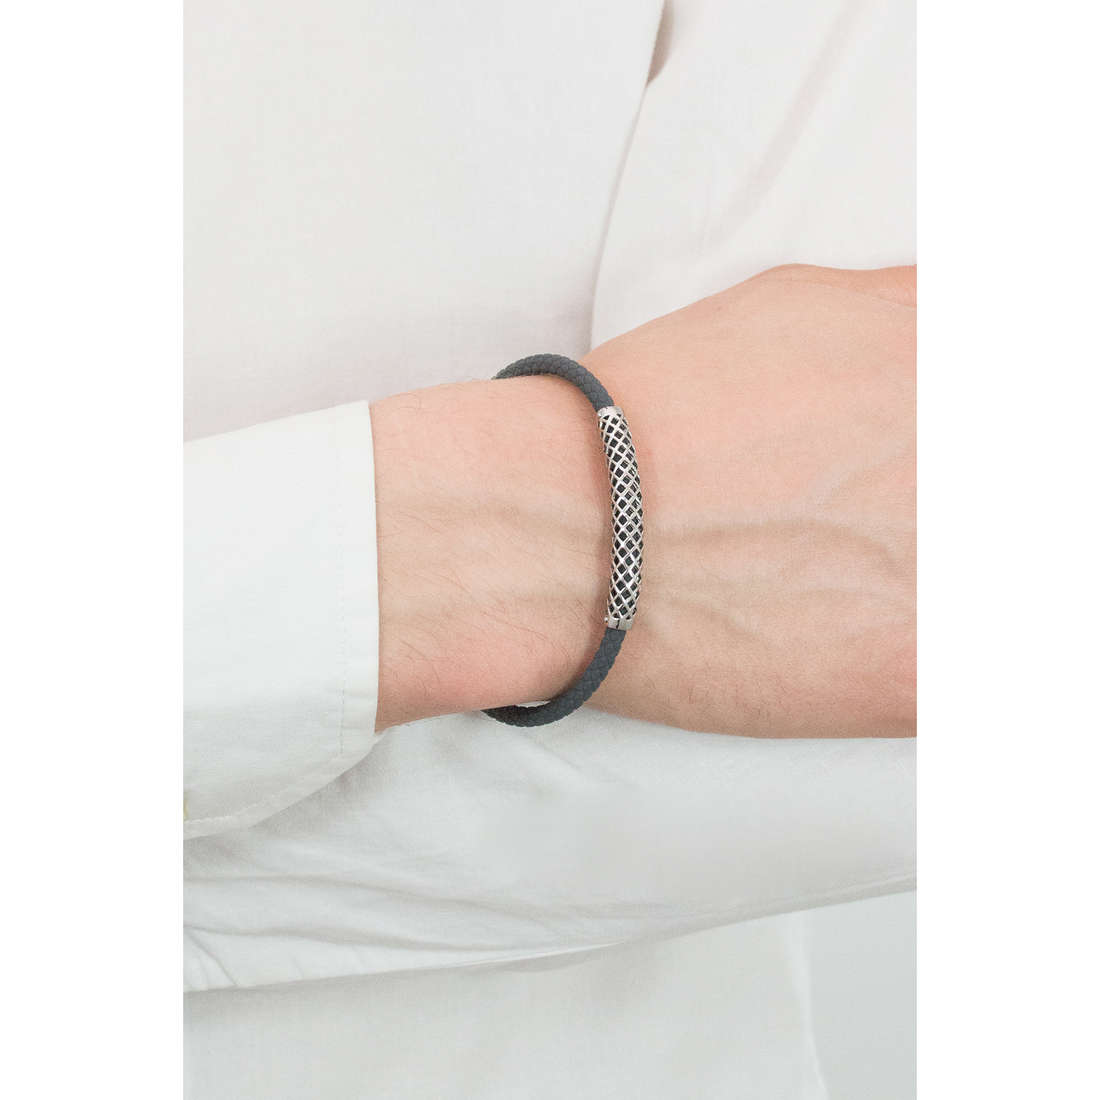 Comete bracelets Net man UBR 622 photo wearing